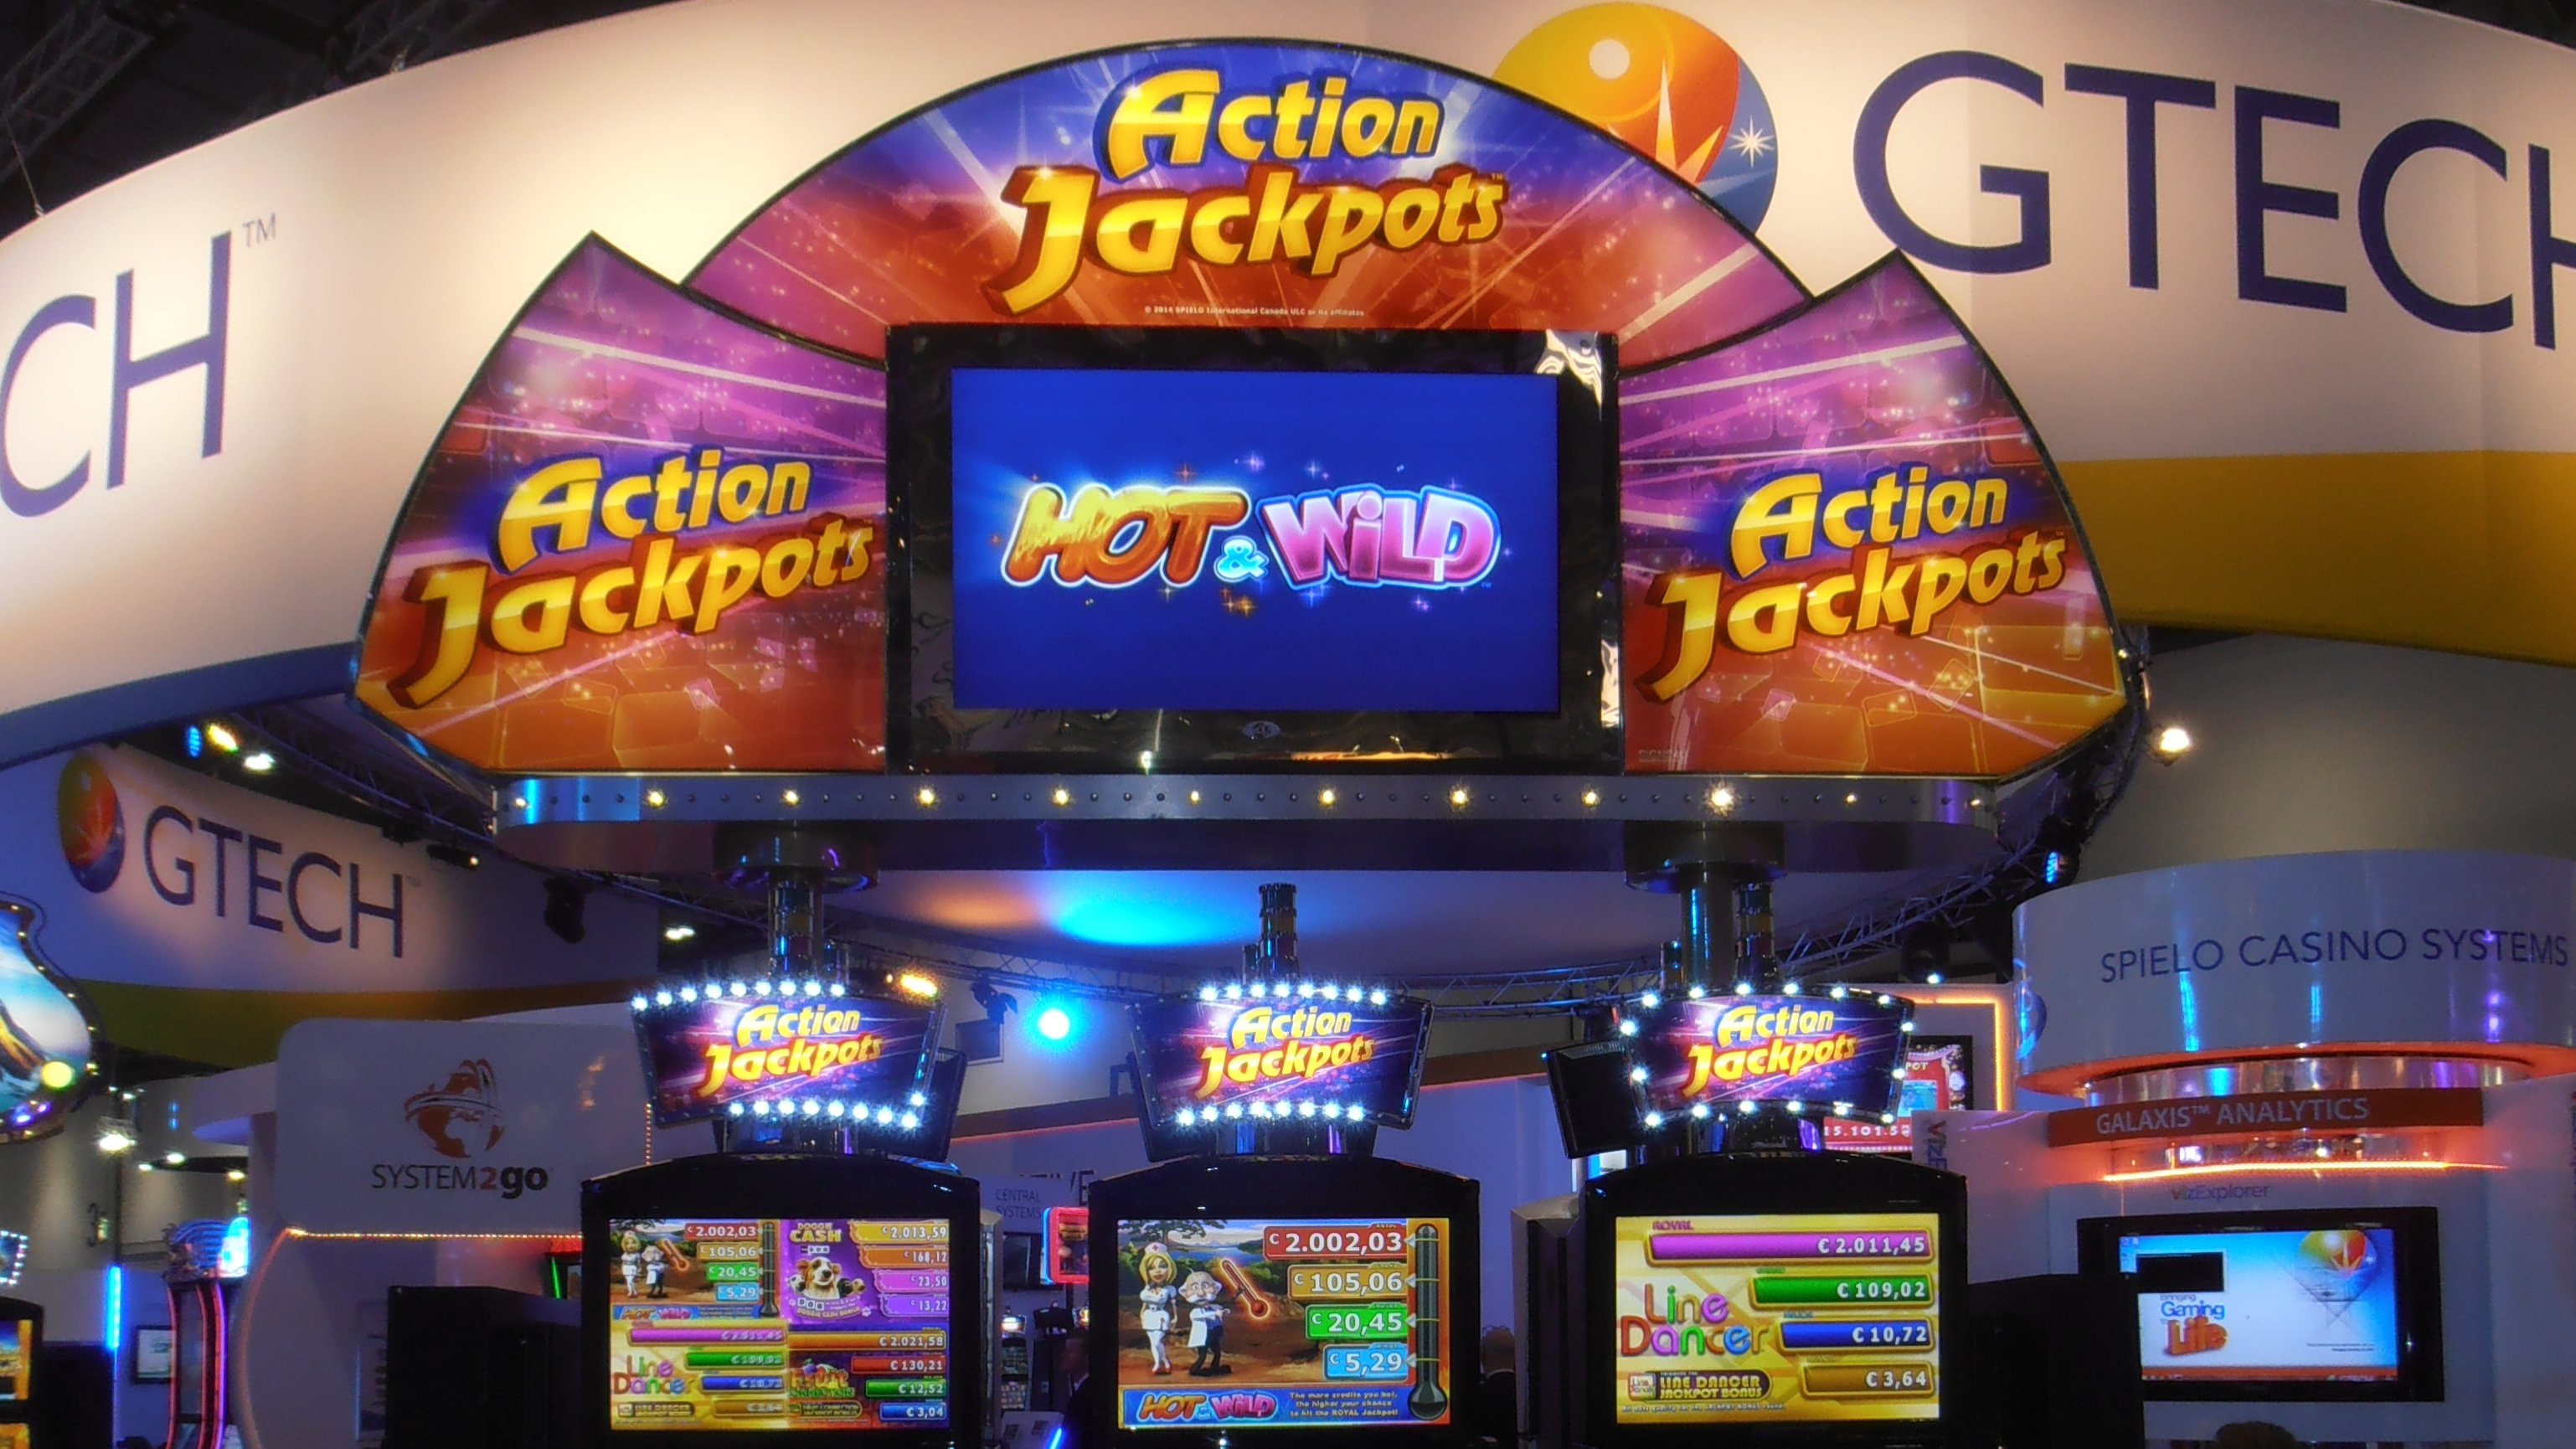 JackpotCity Online Casino - Get / FREE To Play Online Casino Games Now